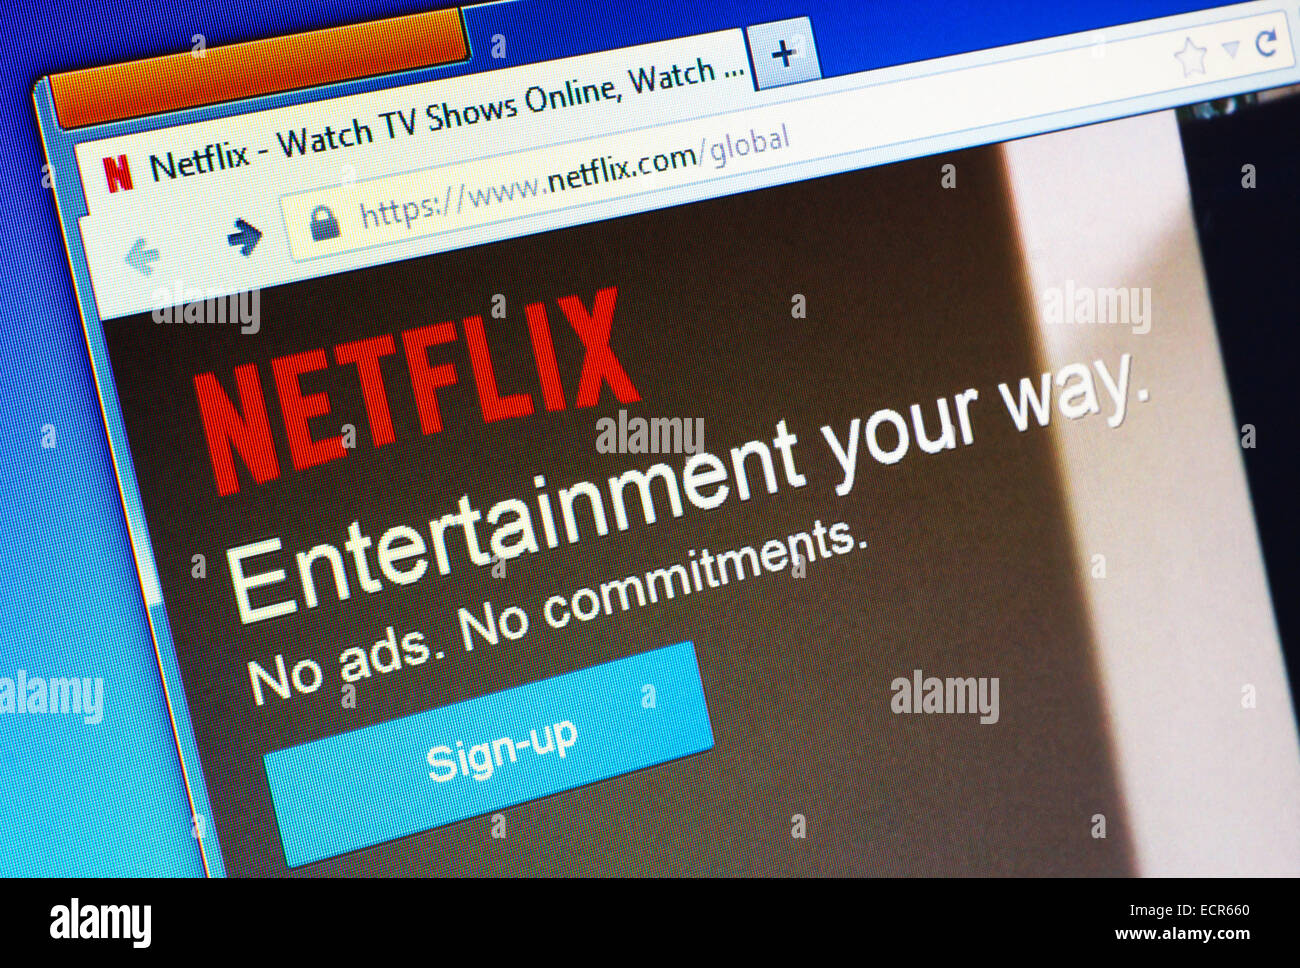 Netflix.com homepage sullo schermo del computer. Netflix è un provider streaming di dati multimediali on-demand. Immagini Stock